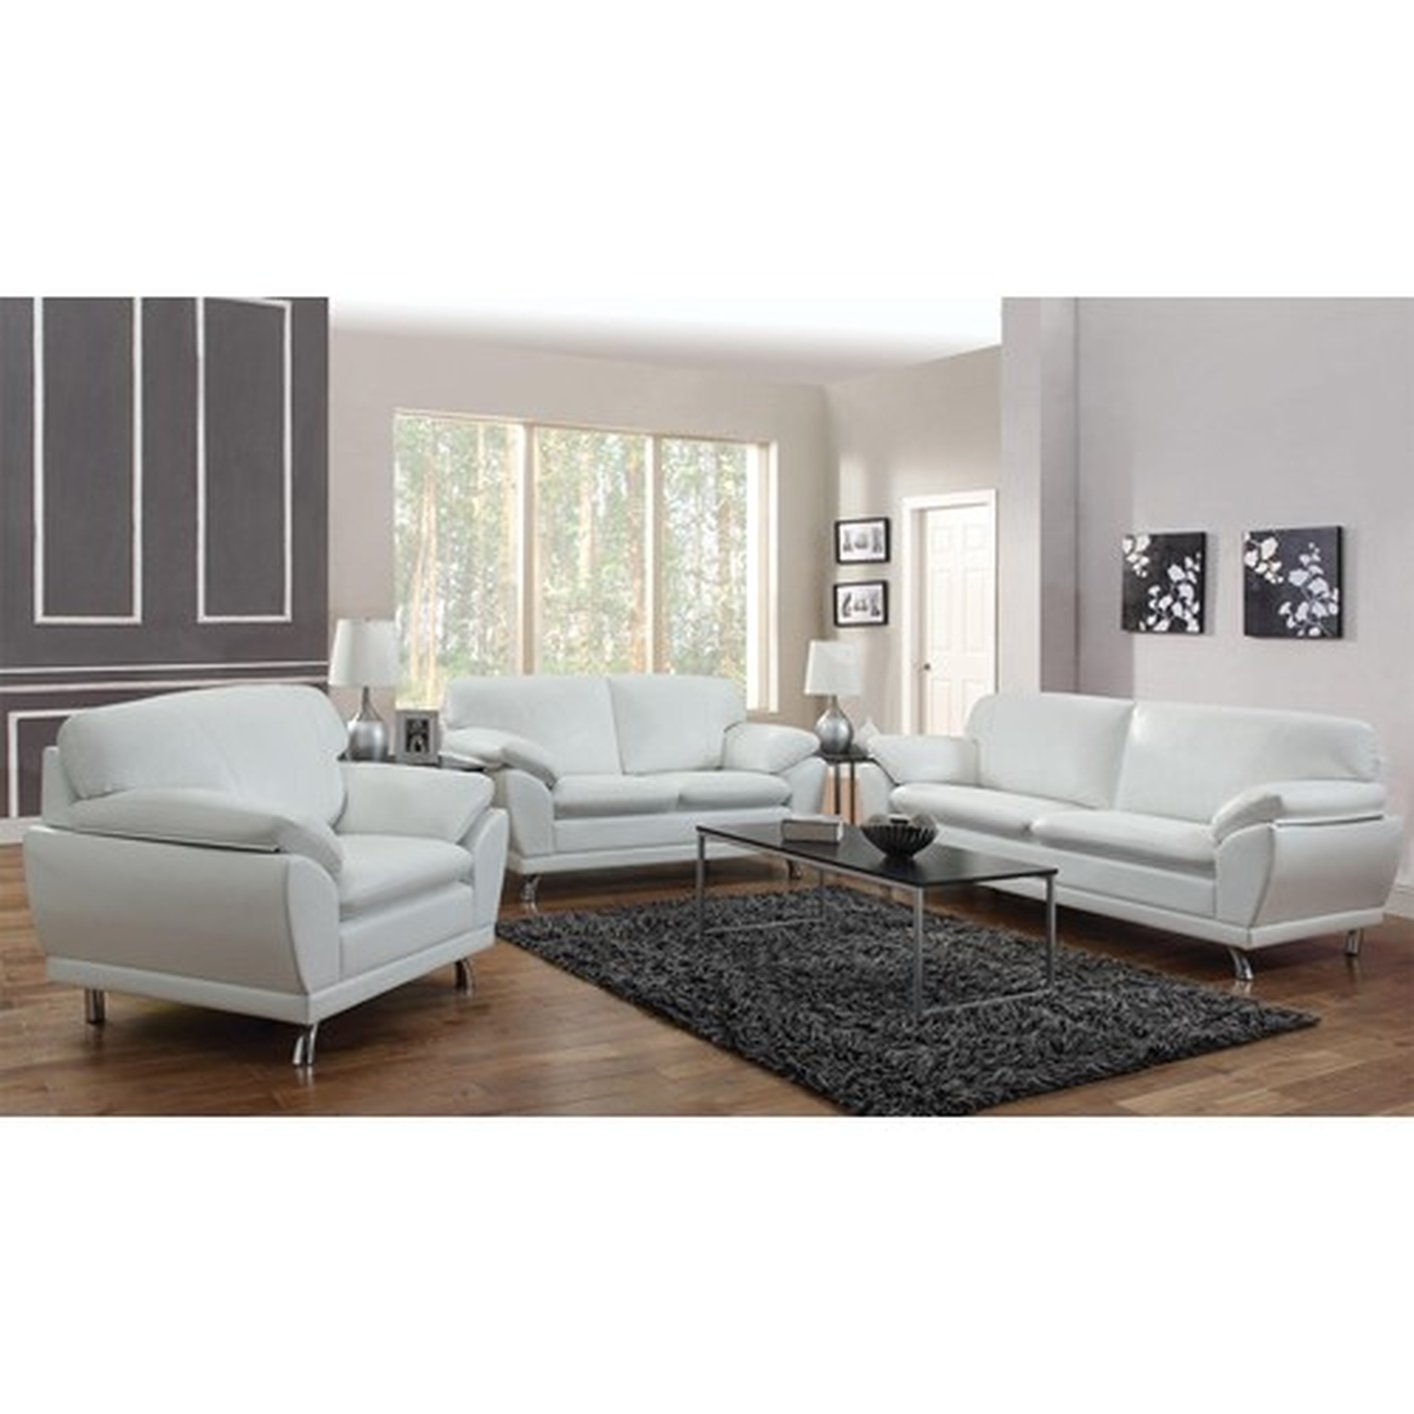 Robyn White Leather Sofa - Steal-A-Sofa Furniture Outlet Los Angeles CA